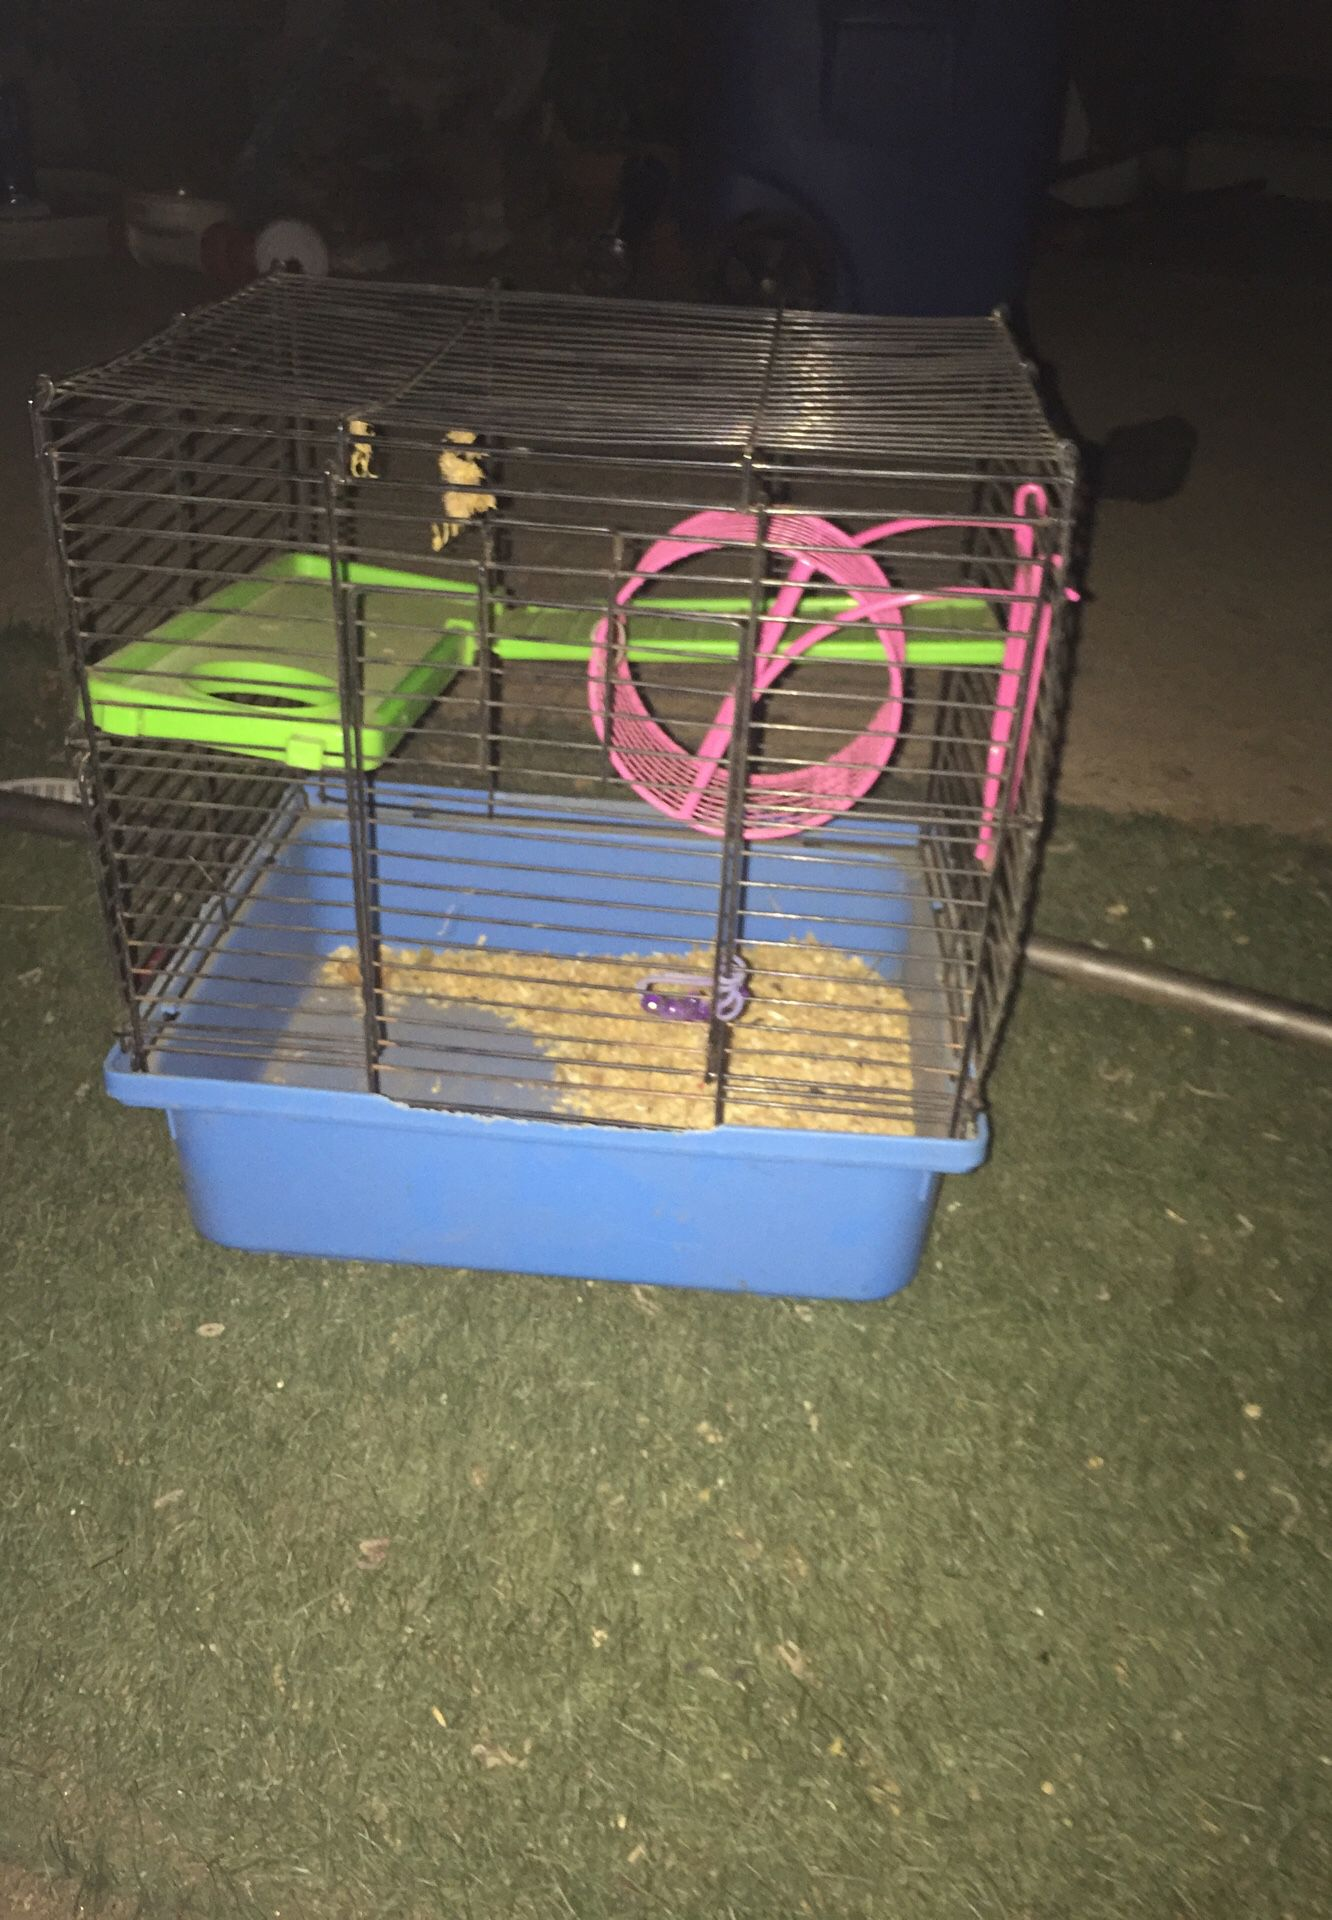 Hamster cage I used it for a hamster but it passed away so I decided to sell it bitten on the blue part a little bit and dirty but will clean if you